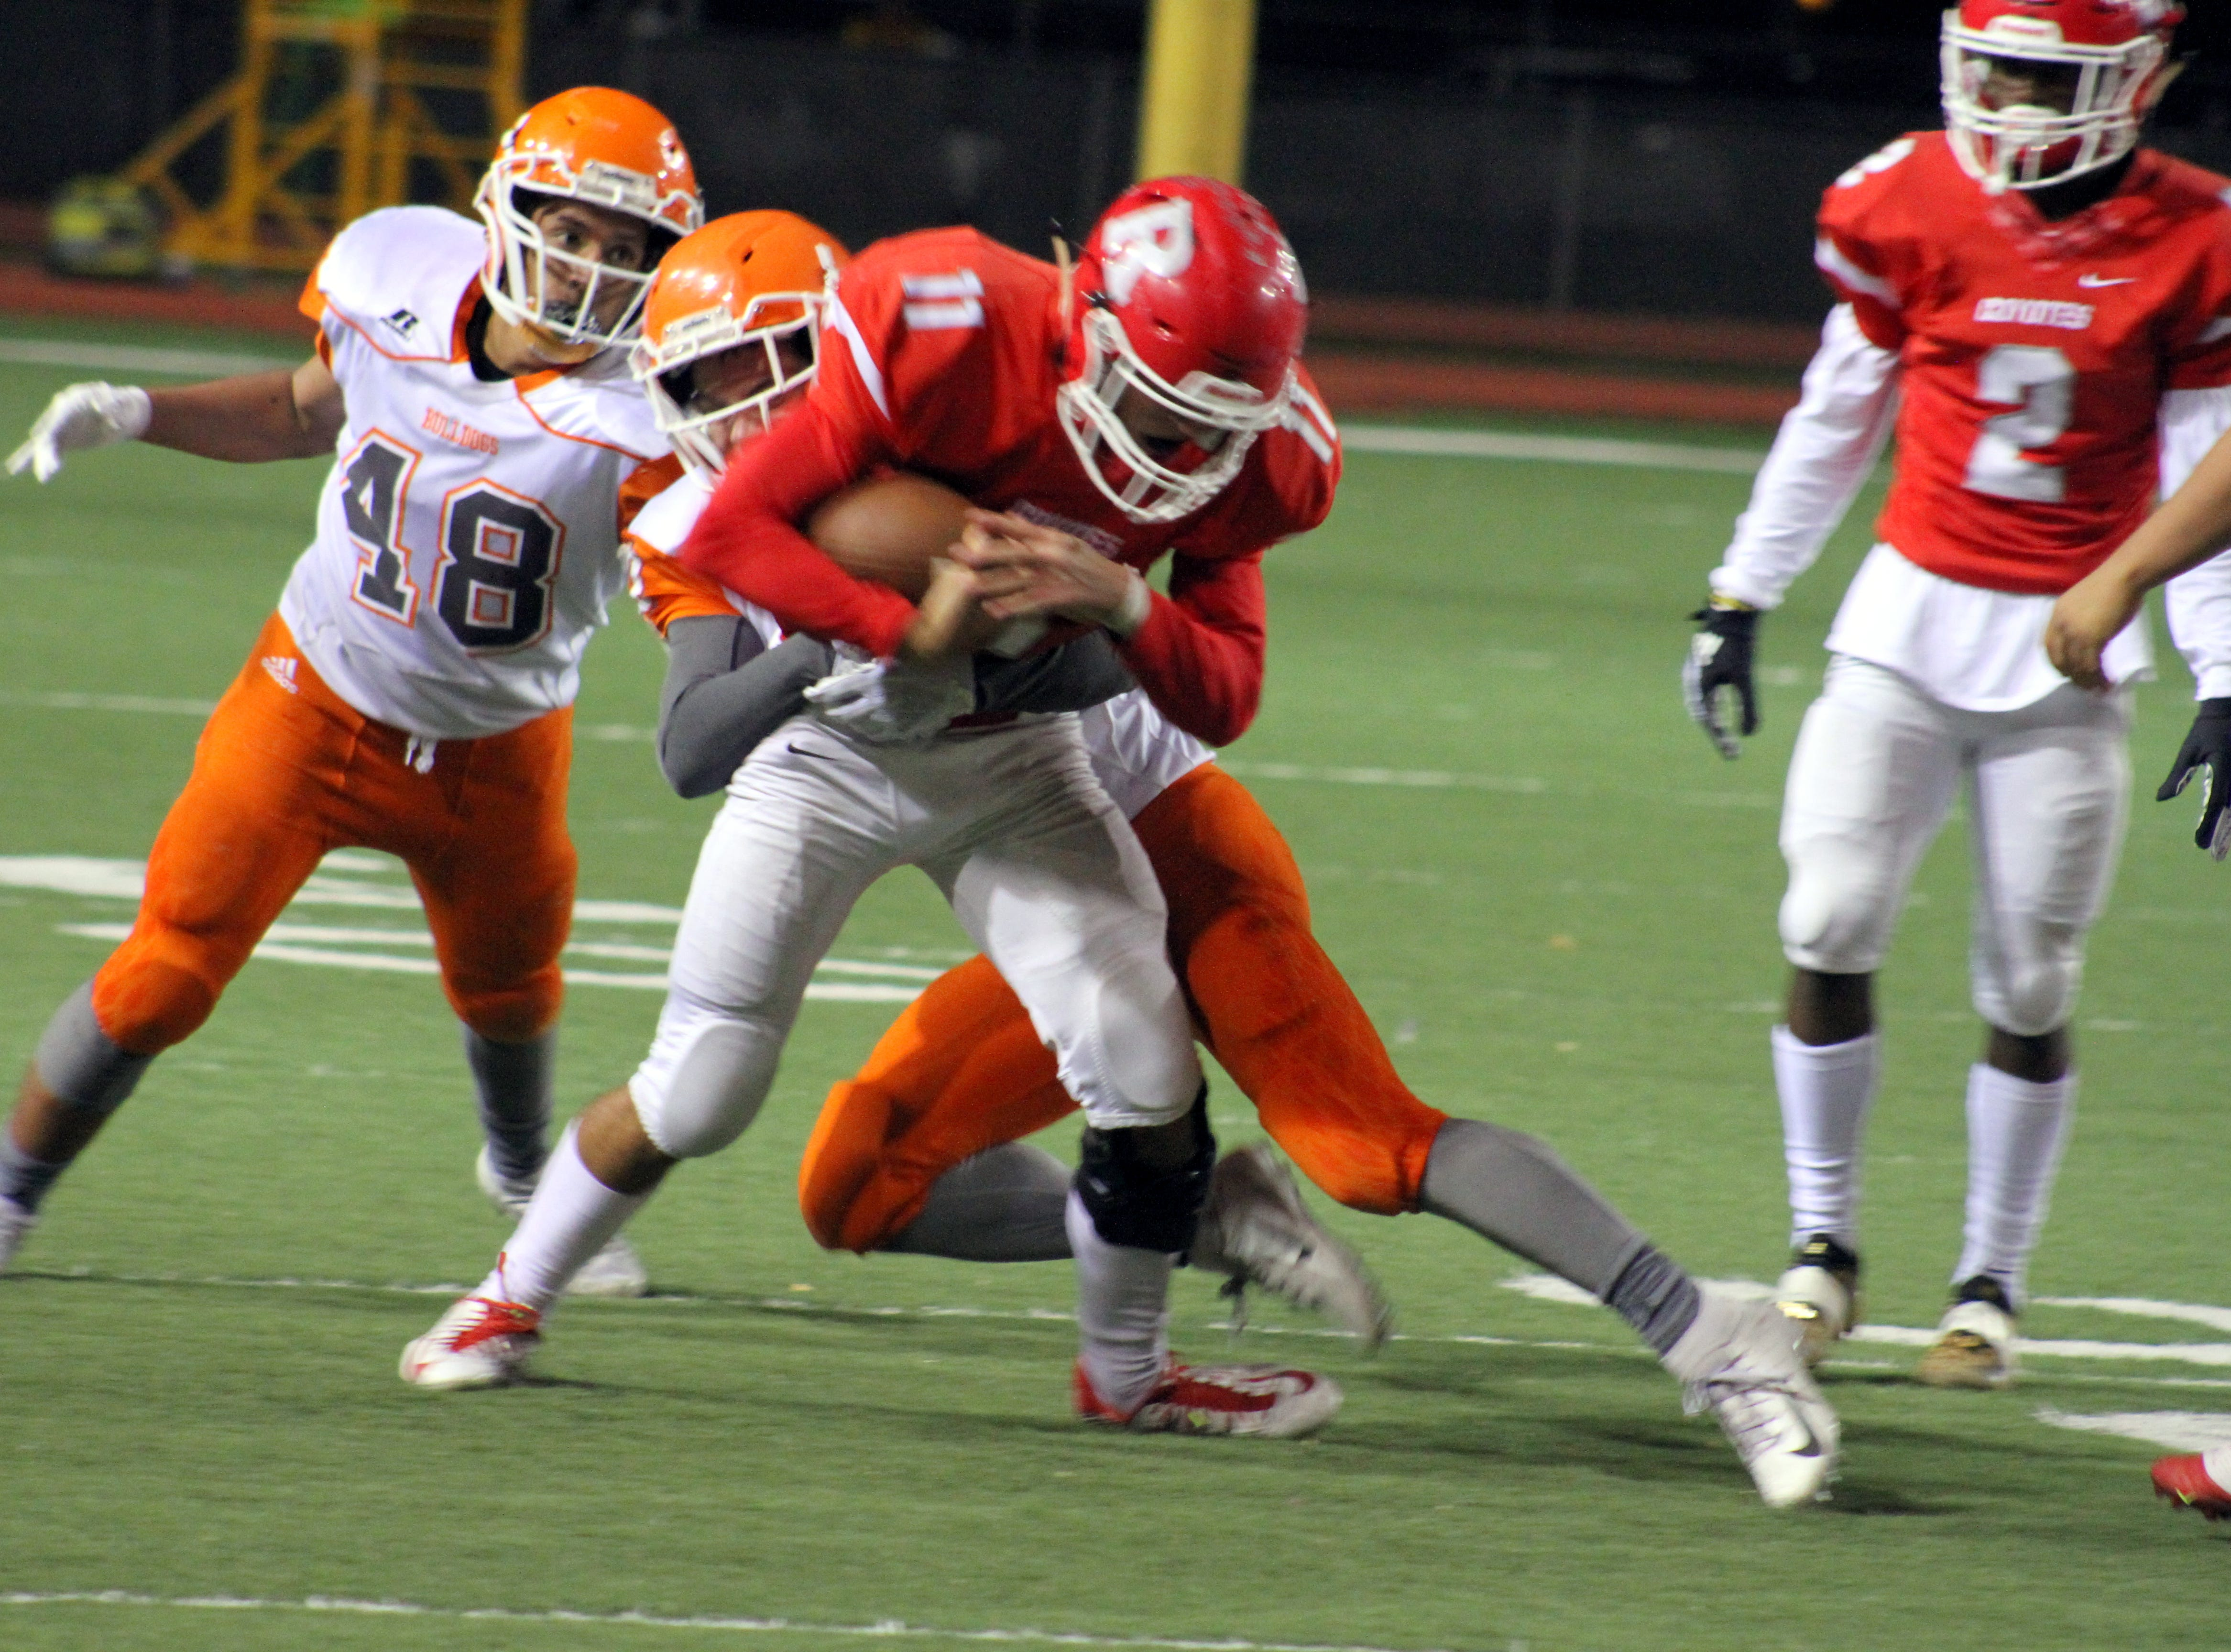 Roswell quarterback Ethan Valenzuela is taken down by Artesia's Ty Johnson during Friday's Class 5A semifinal game.